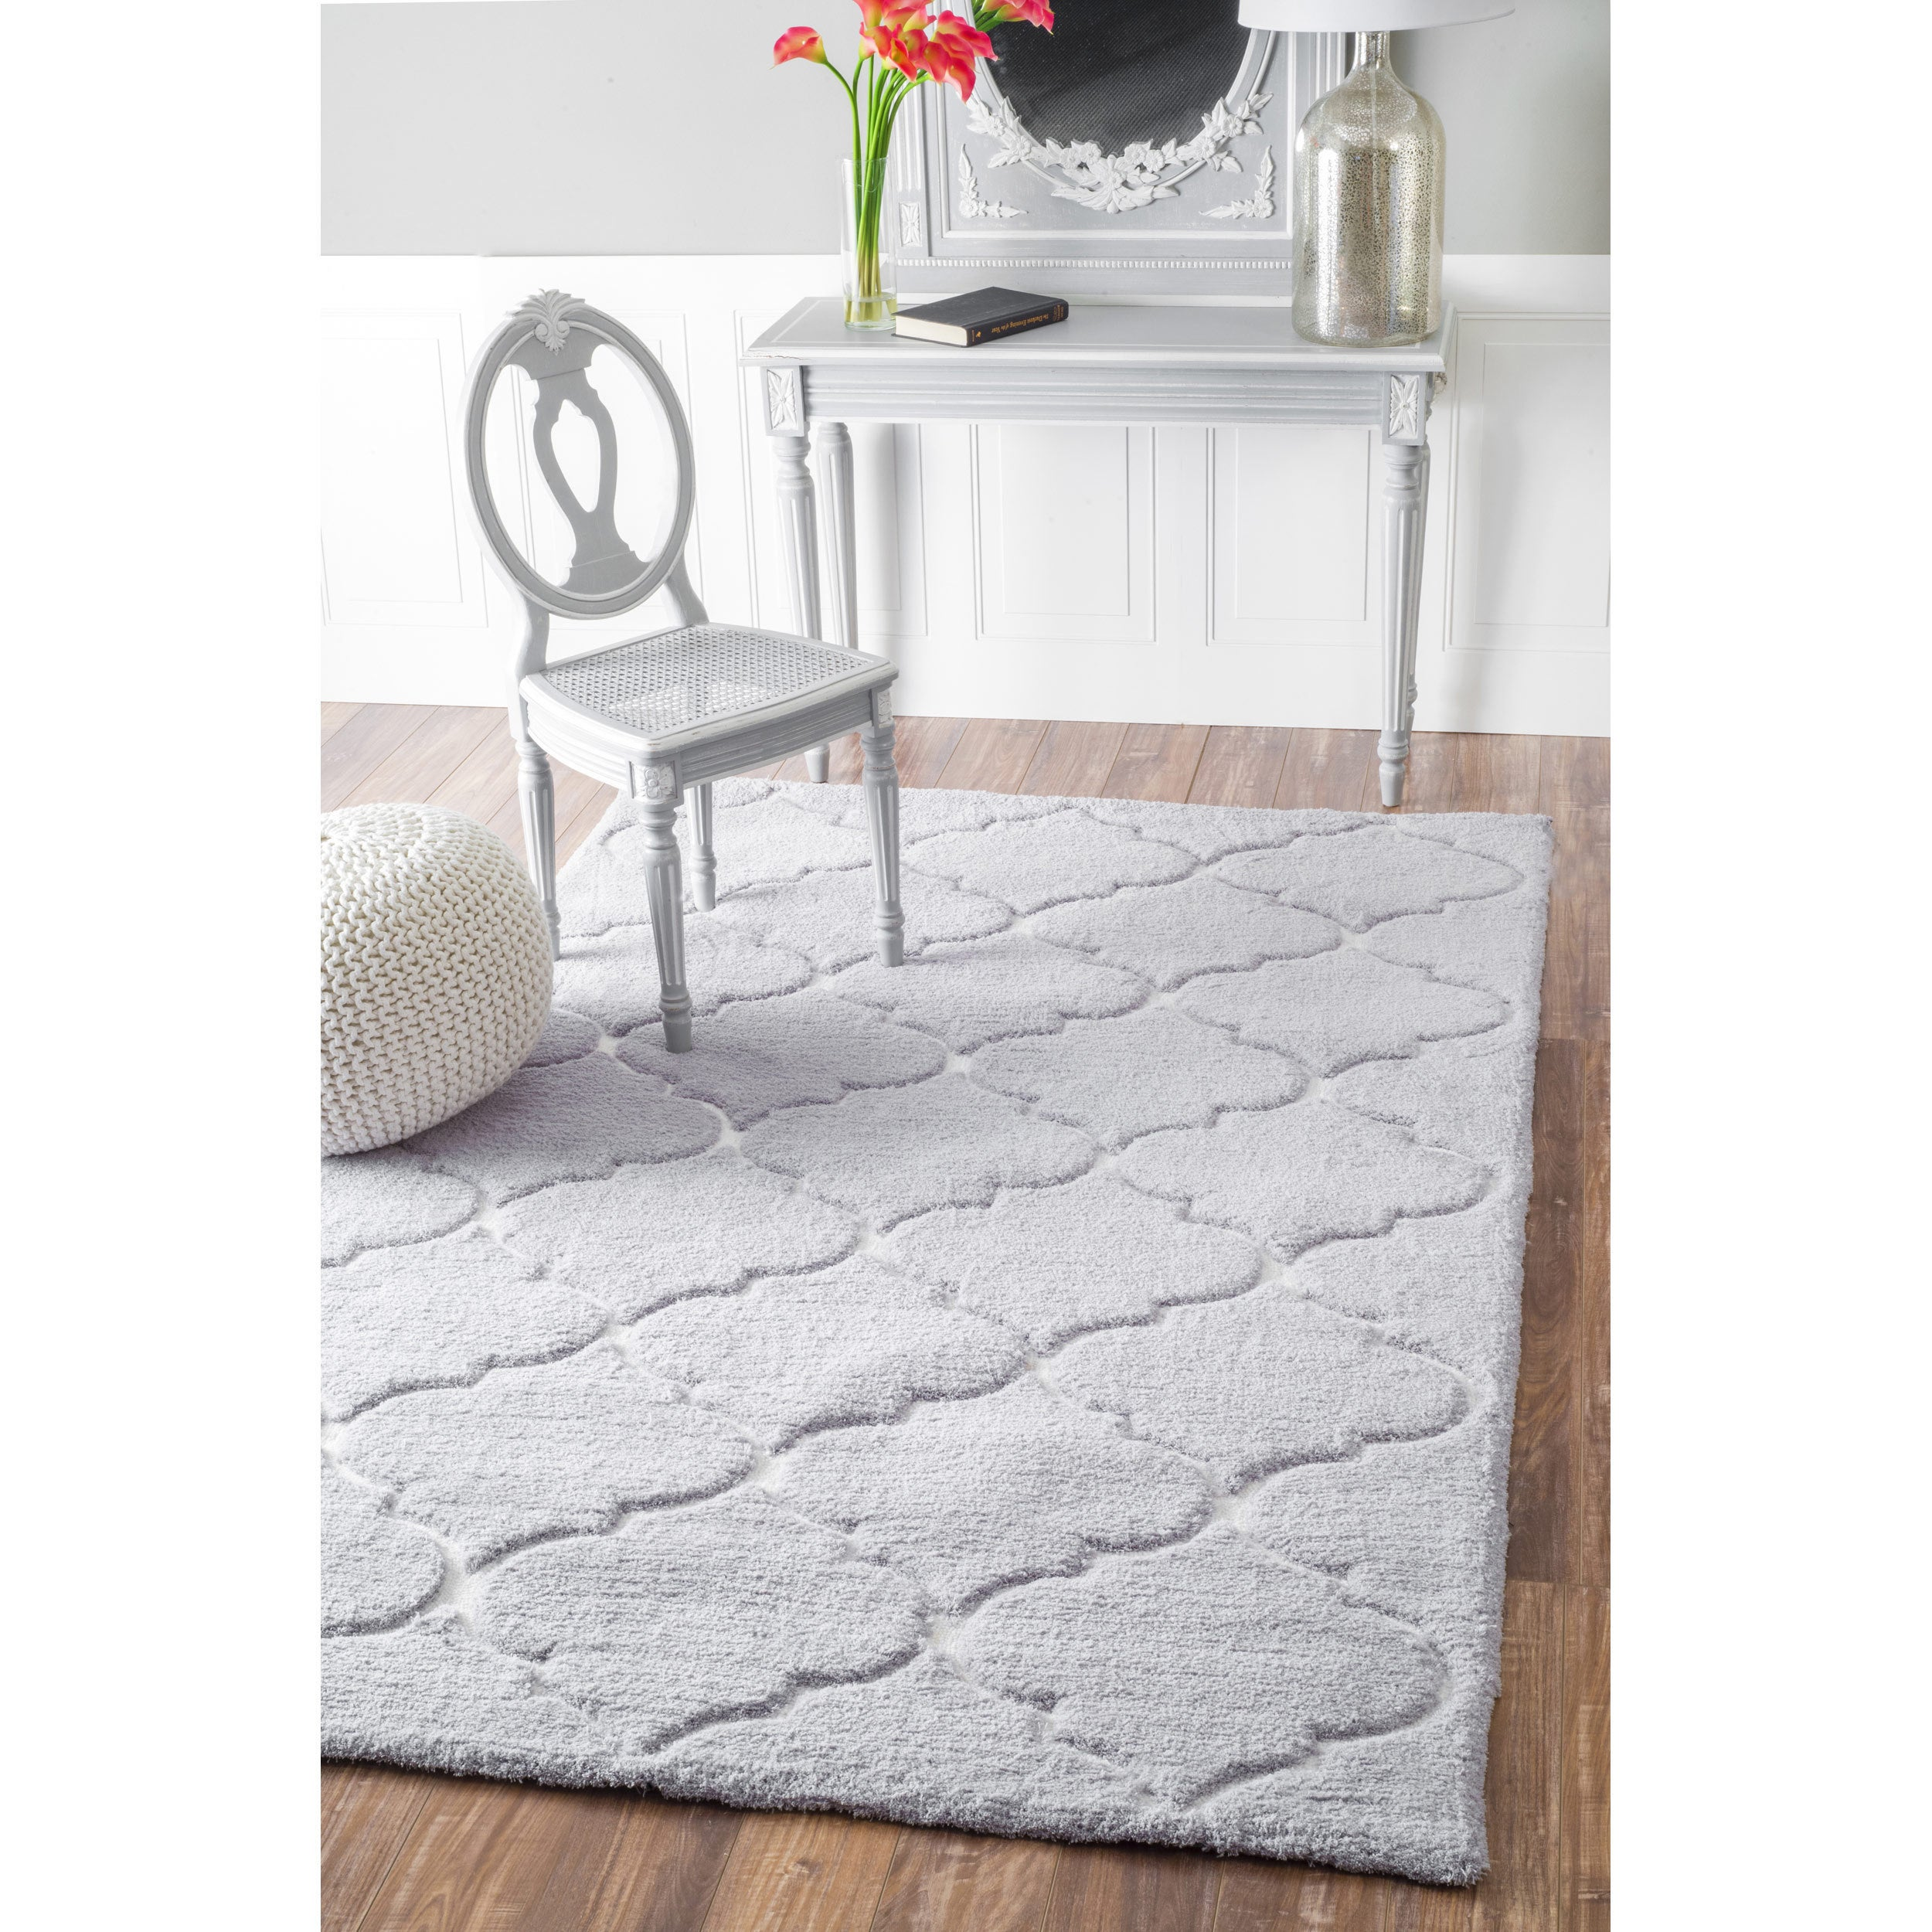 nuLOOM Handmade Geometric Soft and Plush Trellis Grey Sha...